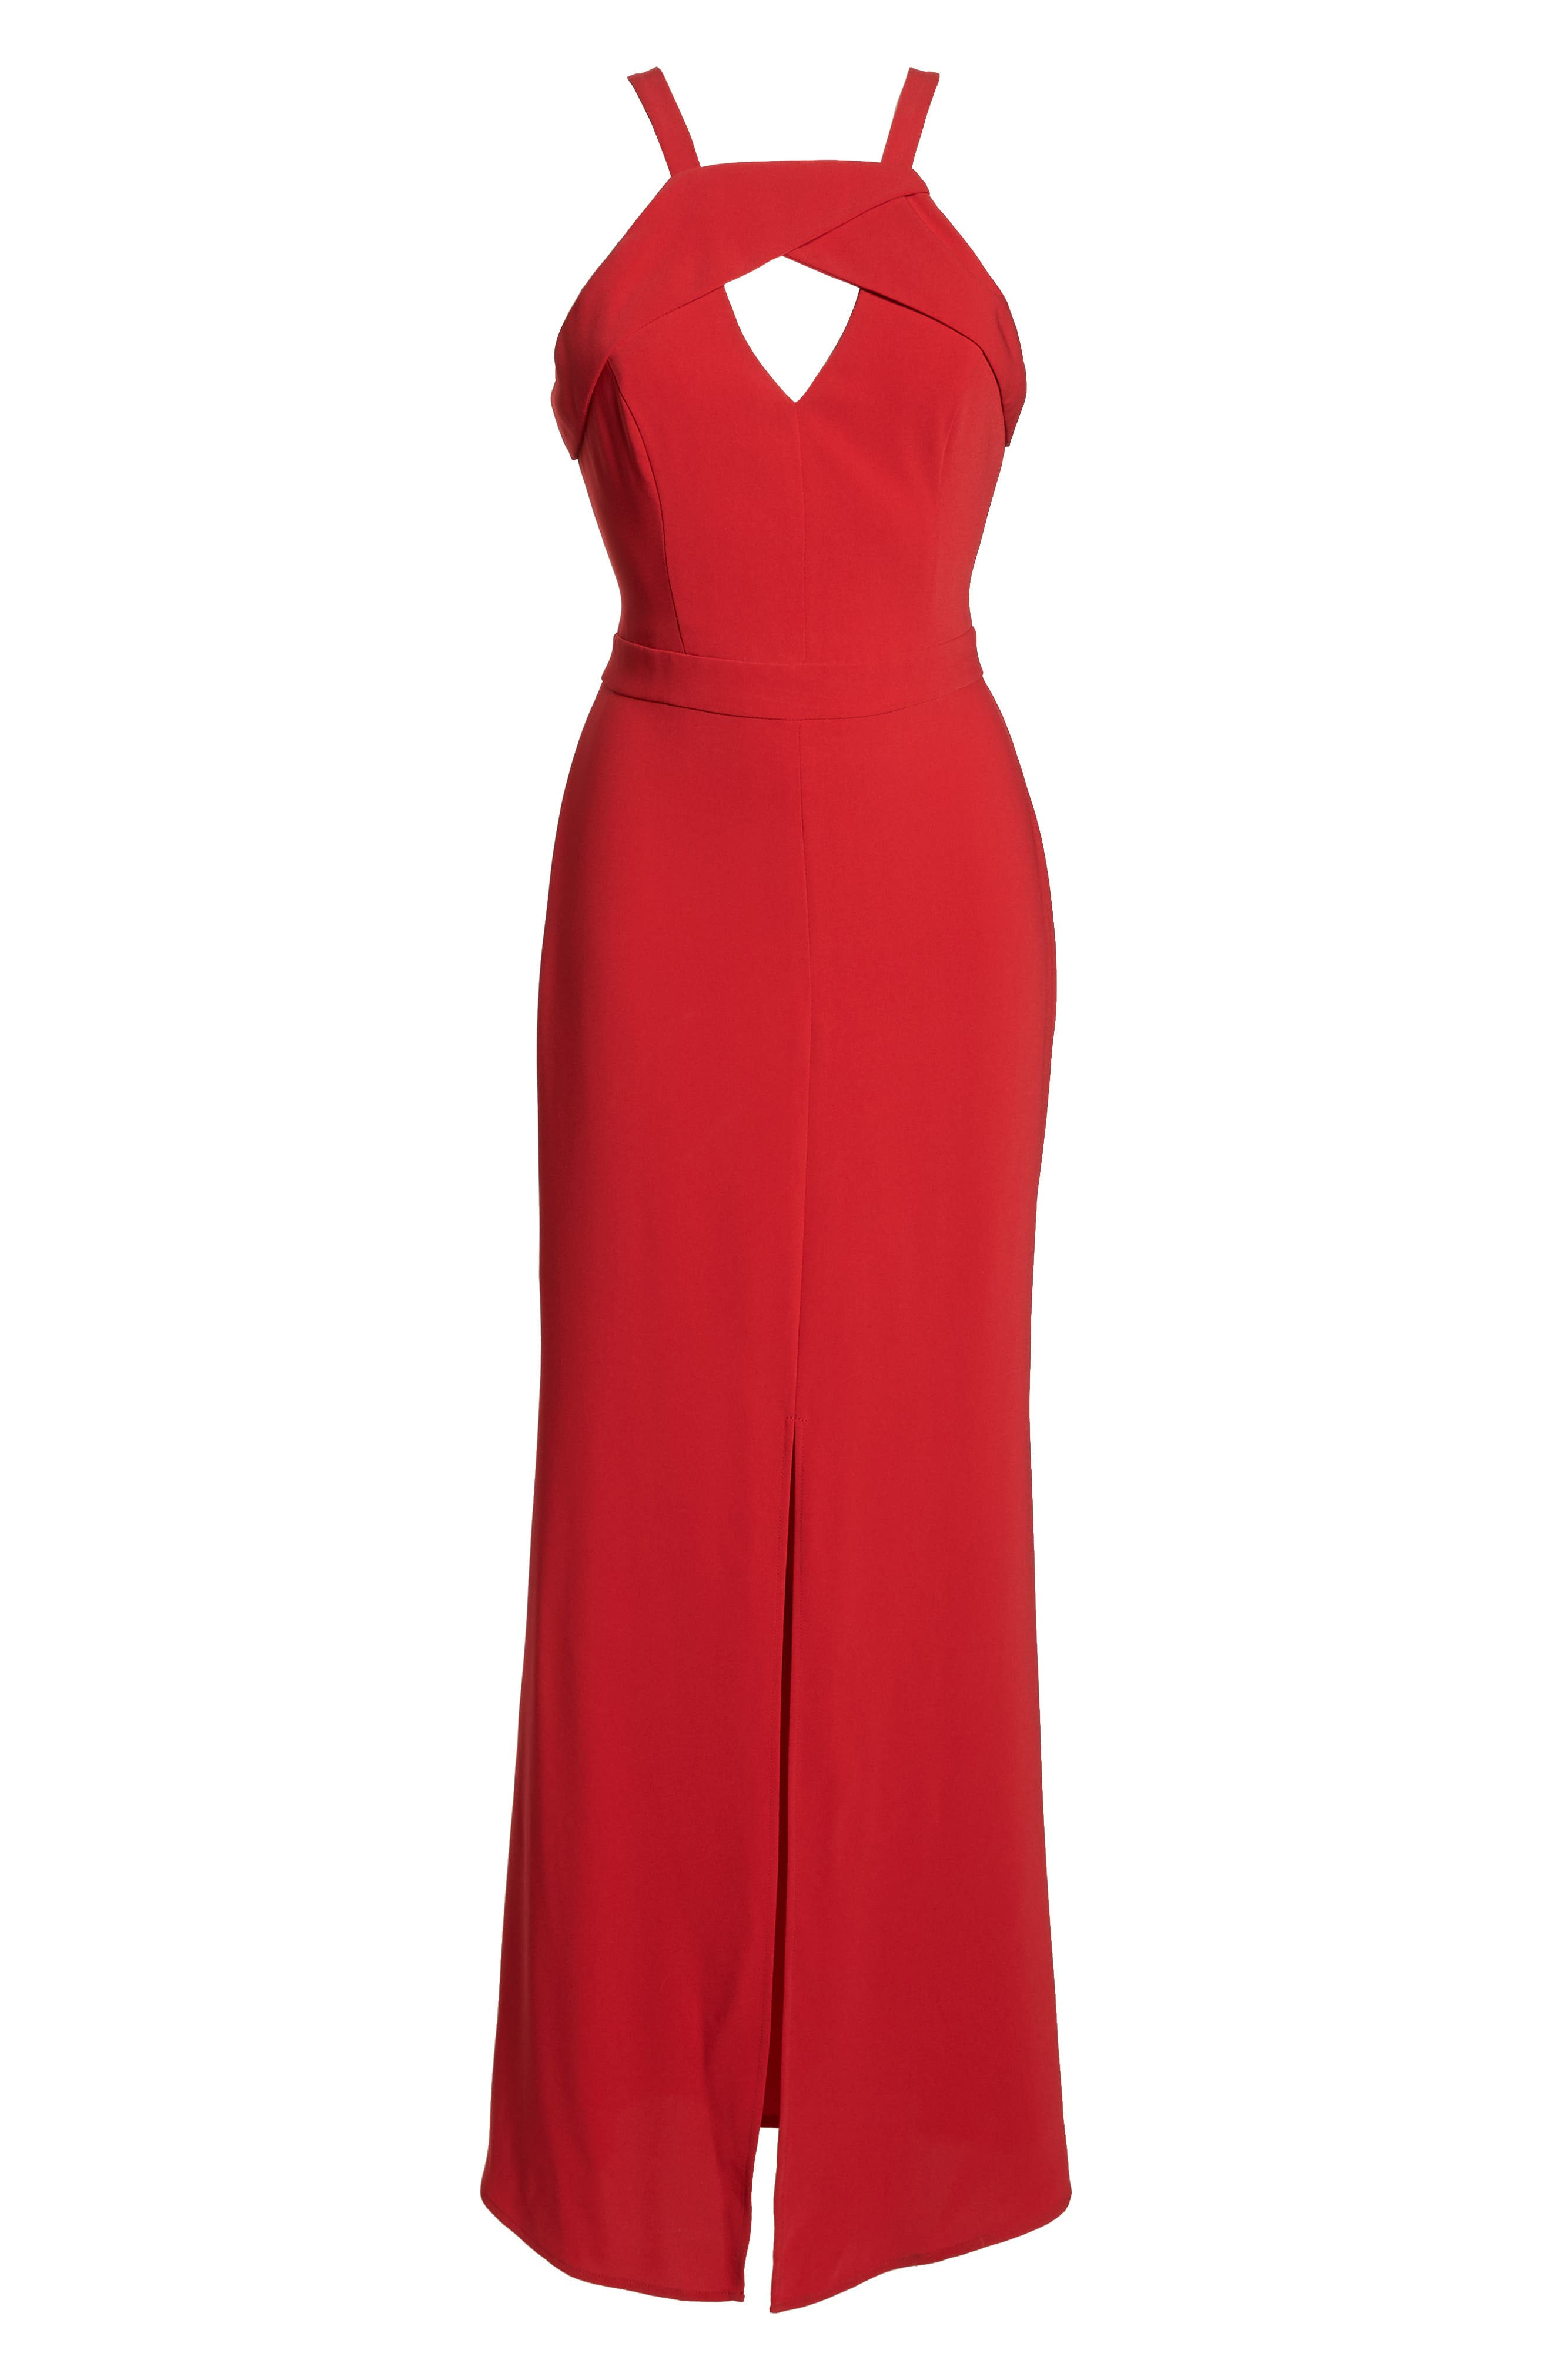 HARLYN,                             Keyhole Bodice Gown,                             Alternate thumbnail 7, color,                             RED